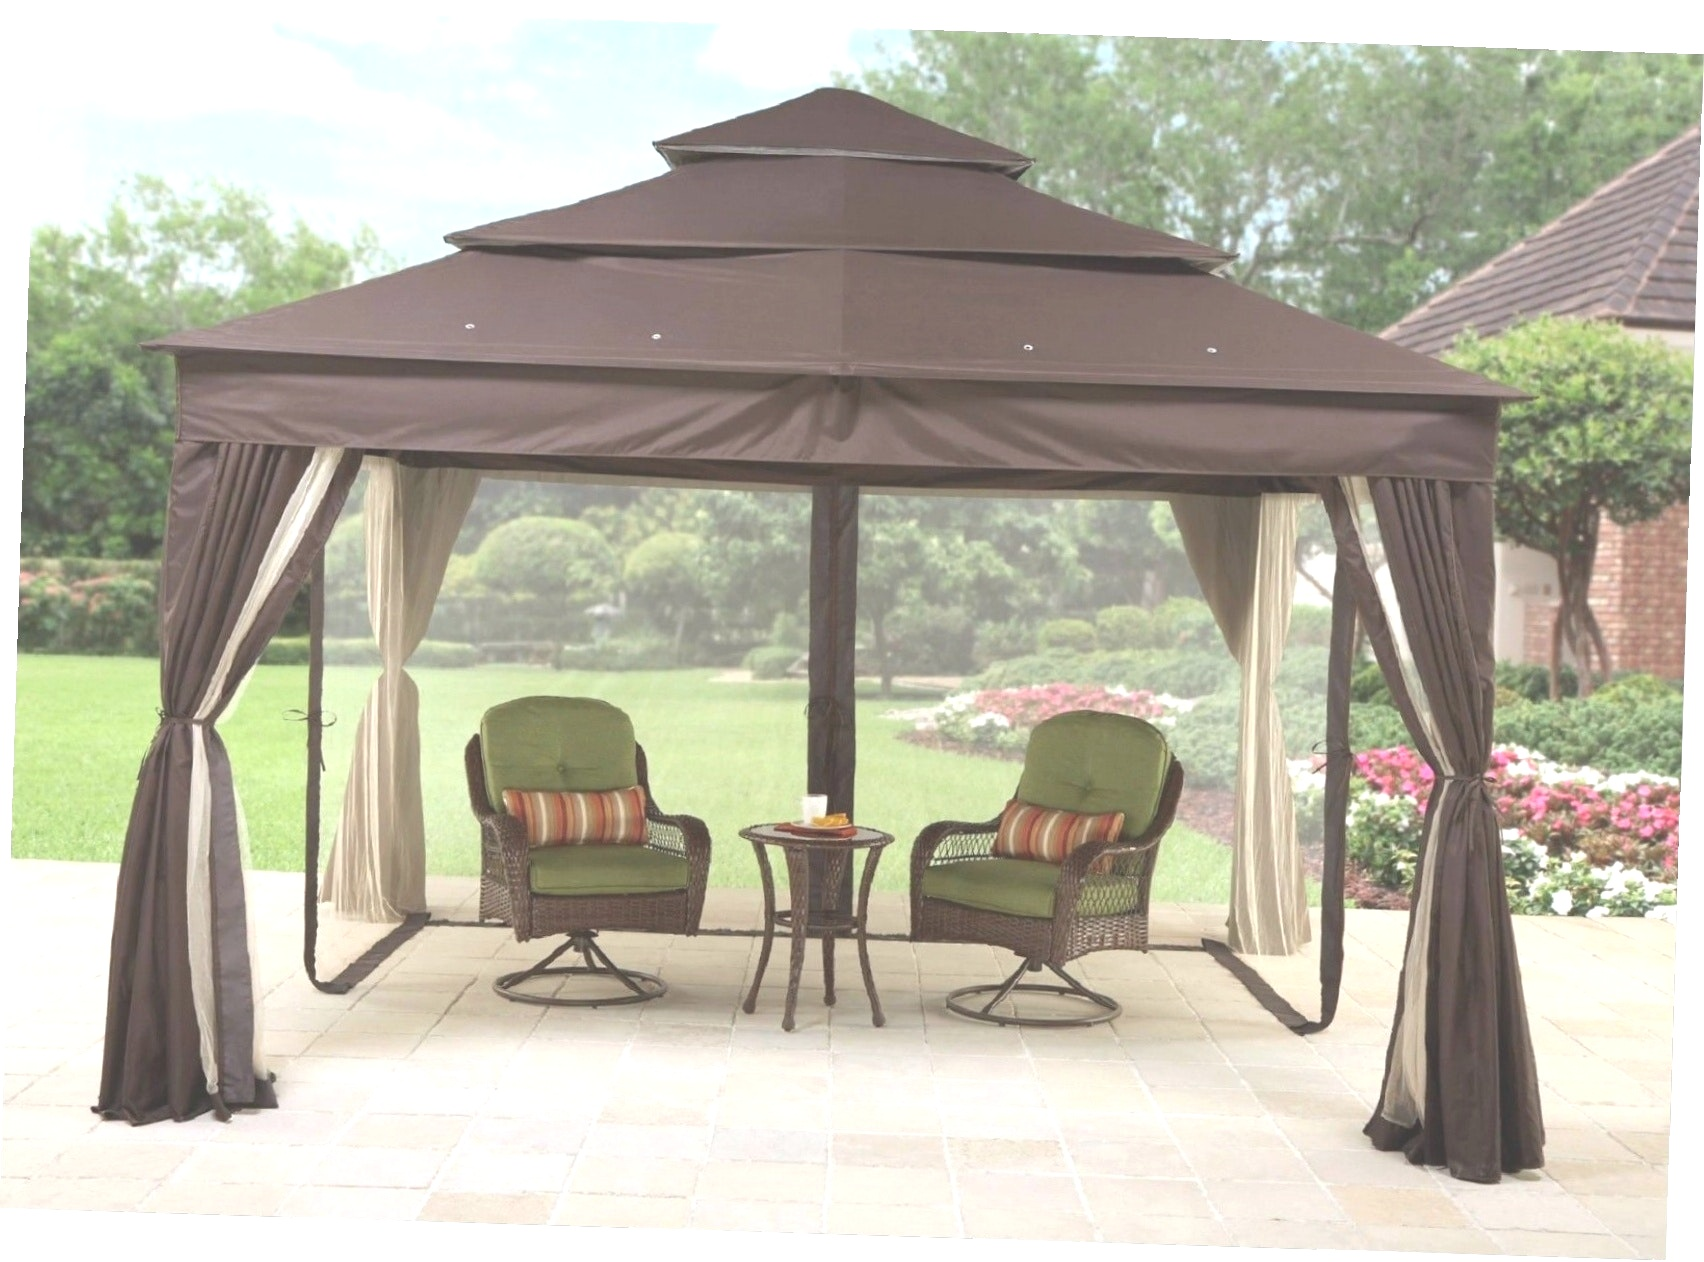 Portable Gazebo For Deck | Outdoor: Gazebo Canopy Walmart | 10x20 Canopy | Walmart Canopy | Portable Gazebo For Deck